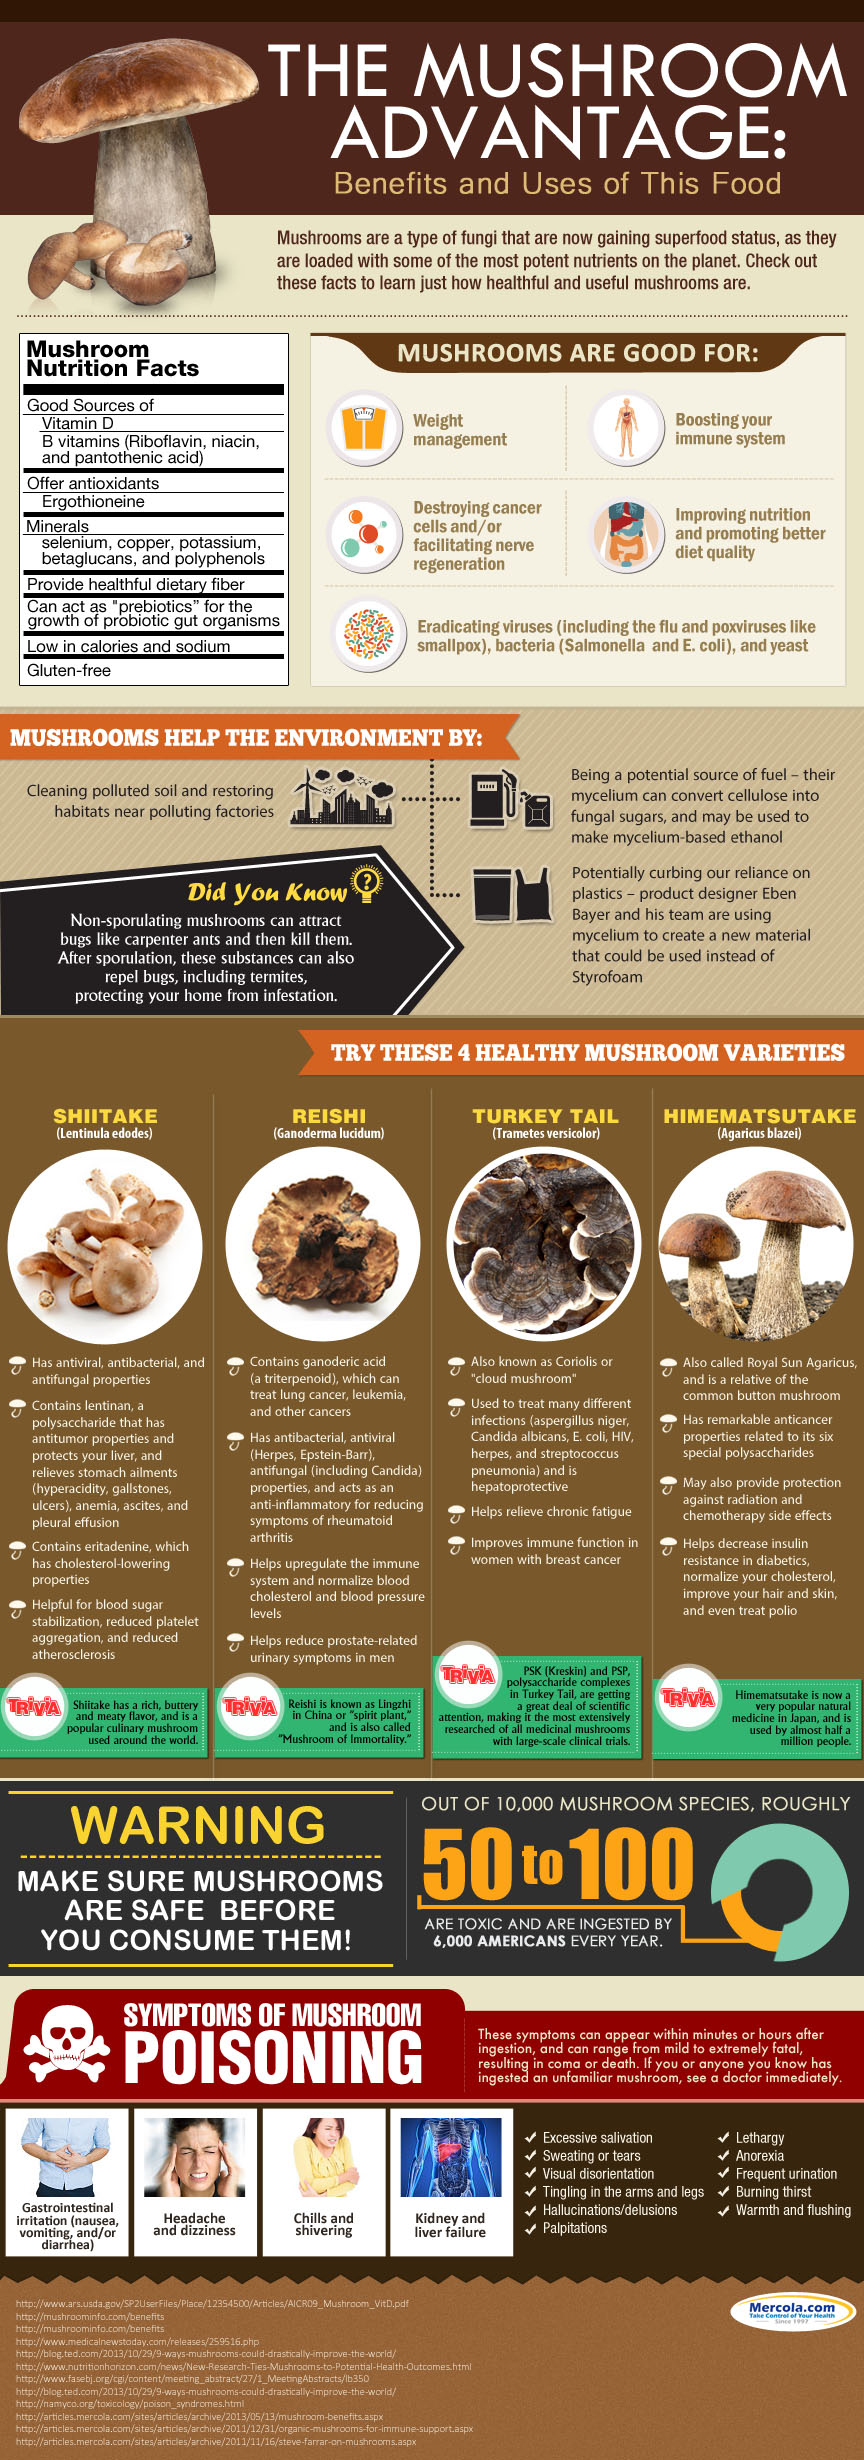 Mushrooms For Your Health: Benefits And Possible Pitfalls Infographic